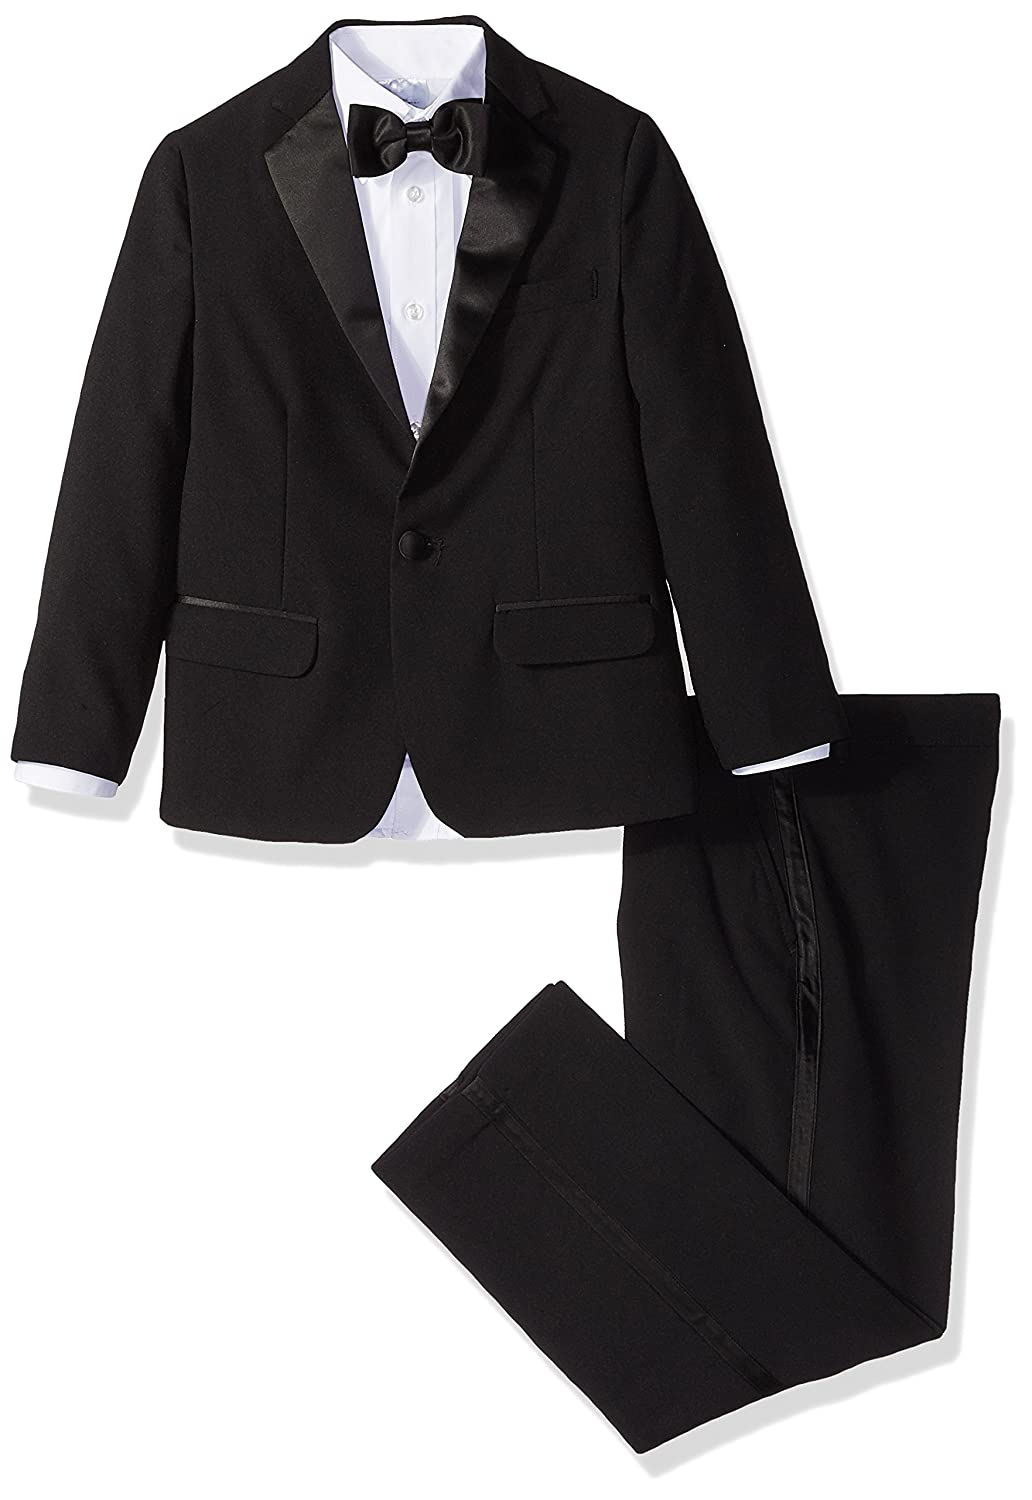 2b26d91283f Amazon.com: IZOD Boys' 4-Piece Formal Tuxedo Set with Jacket, Pants, Shirt,  and Bow Tie: Clothing